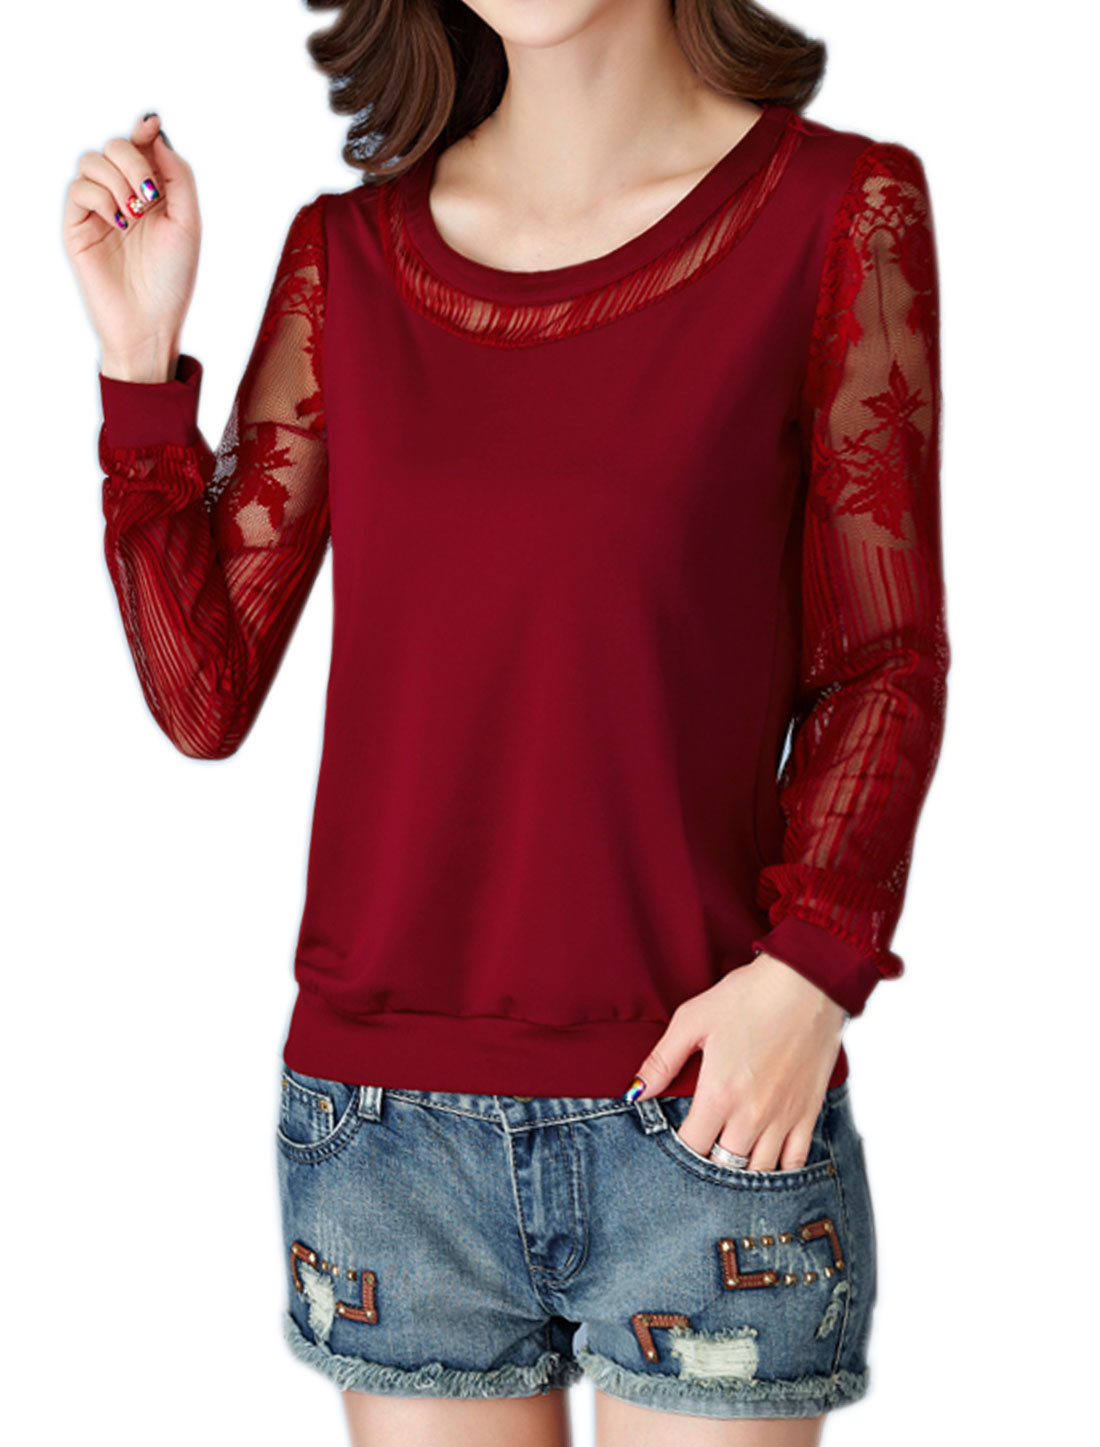 Women Scoop Neck See Through Long Sleeves Floral Lace Panel Top Red M